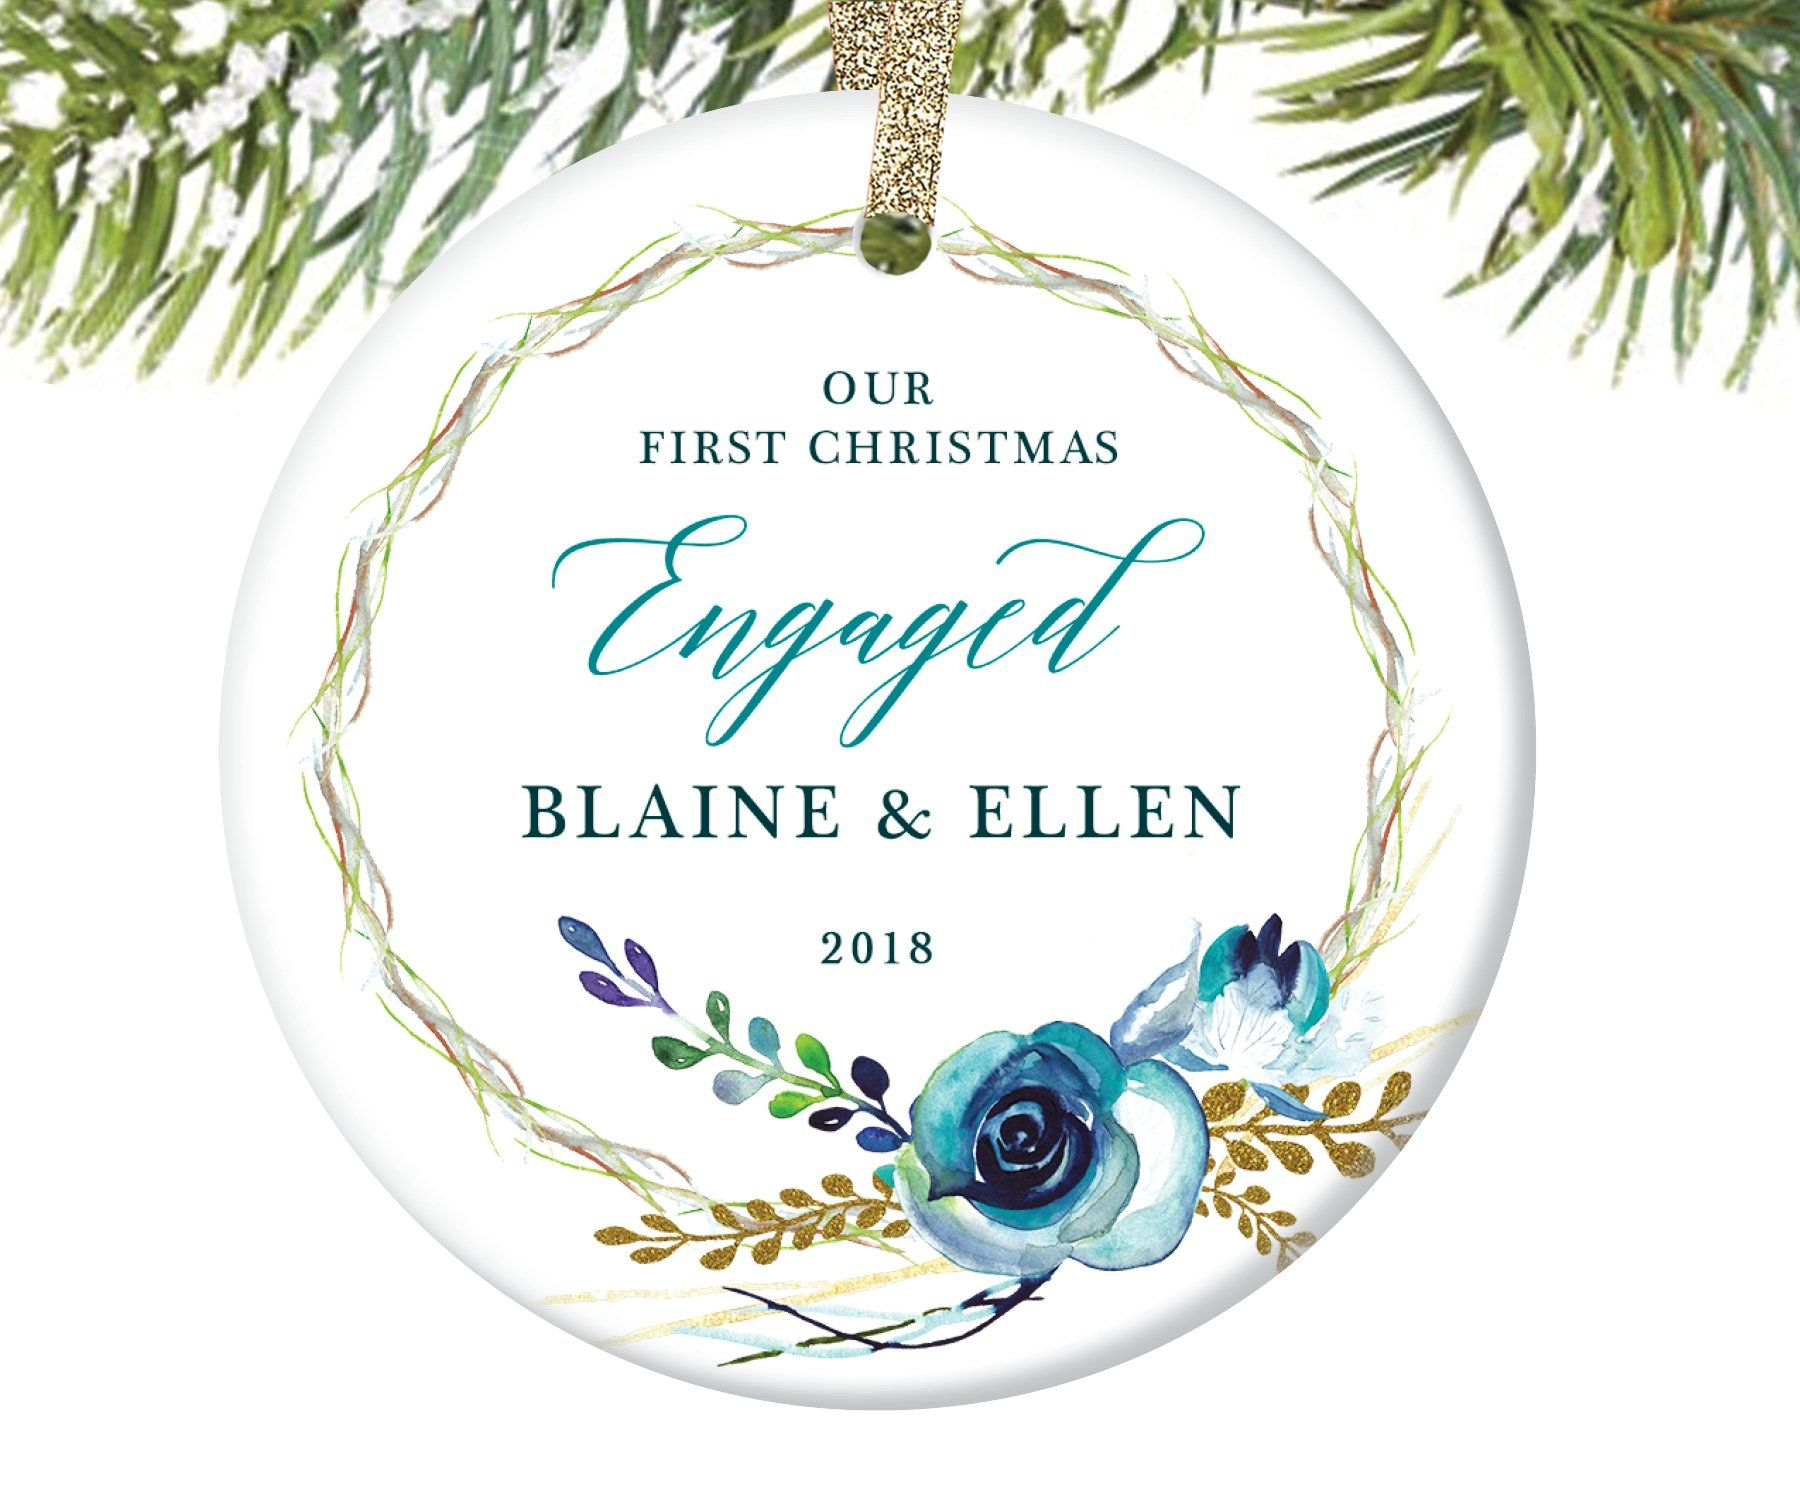 First christmas engaged ornament personalized digibuddha